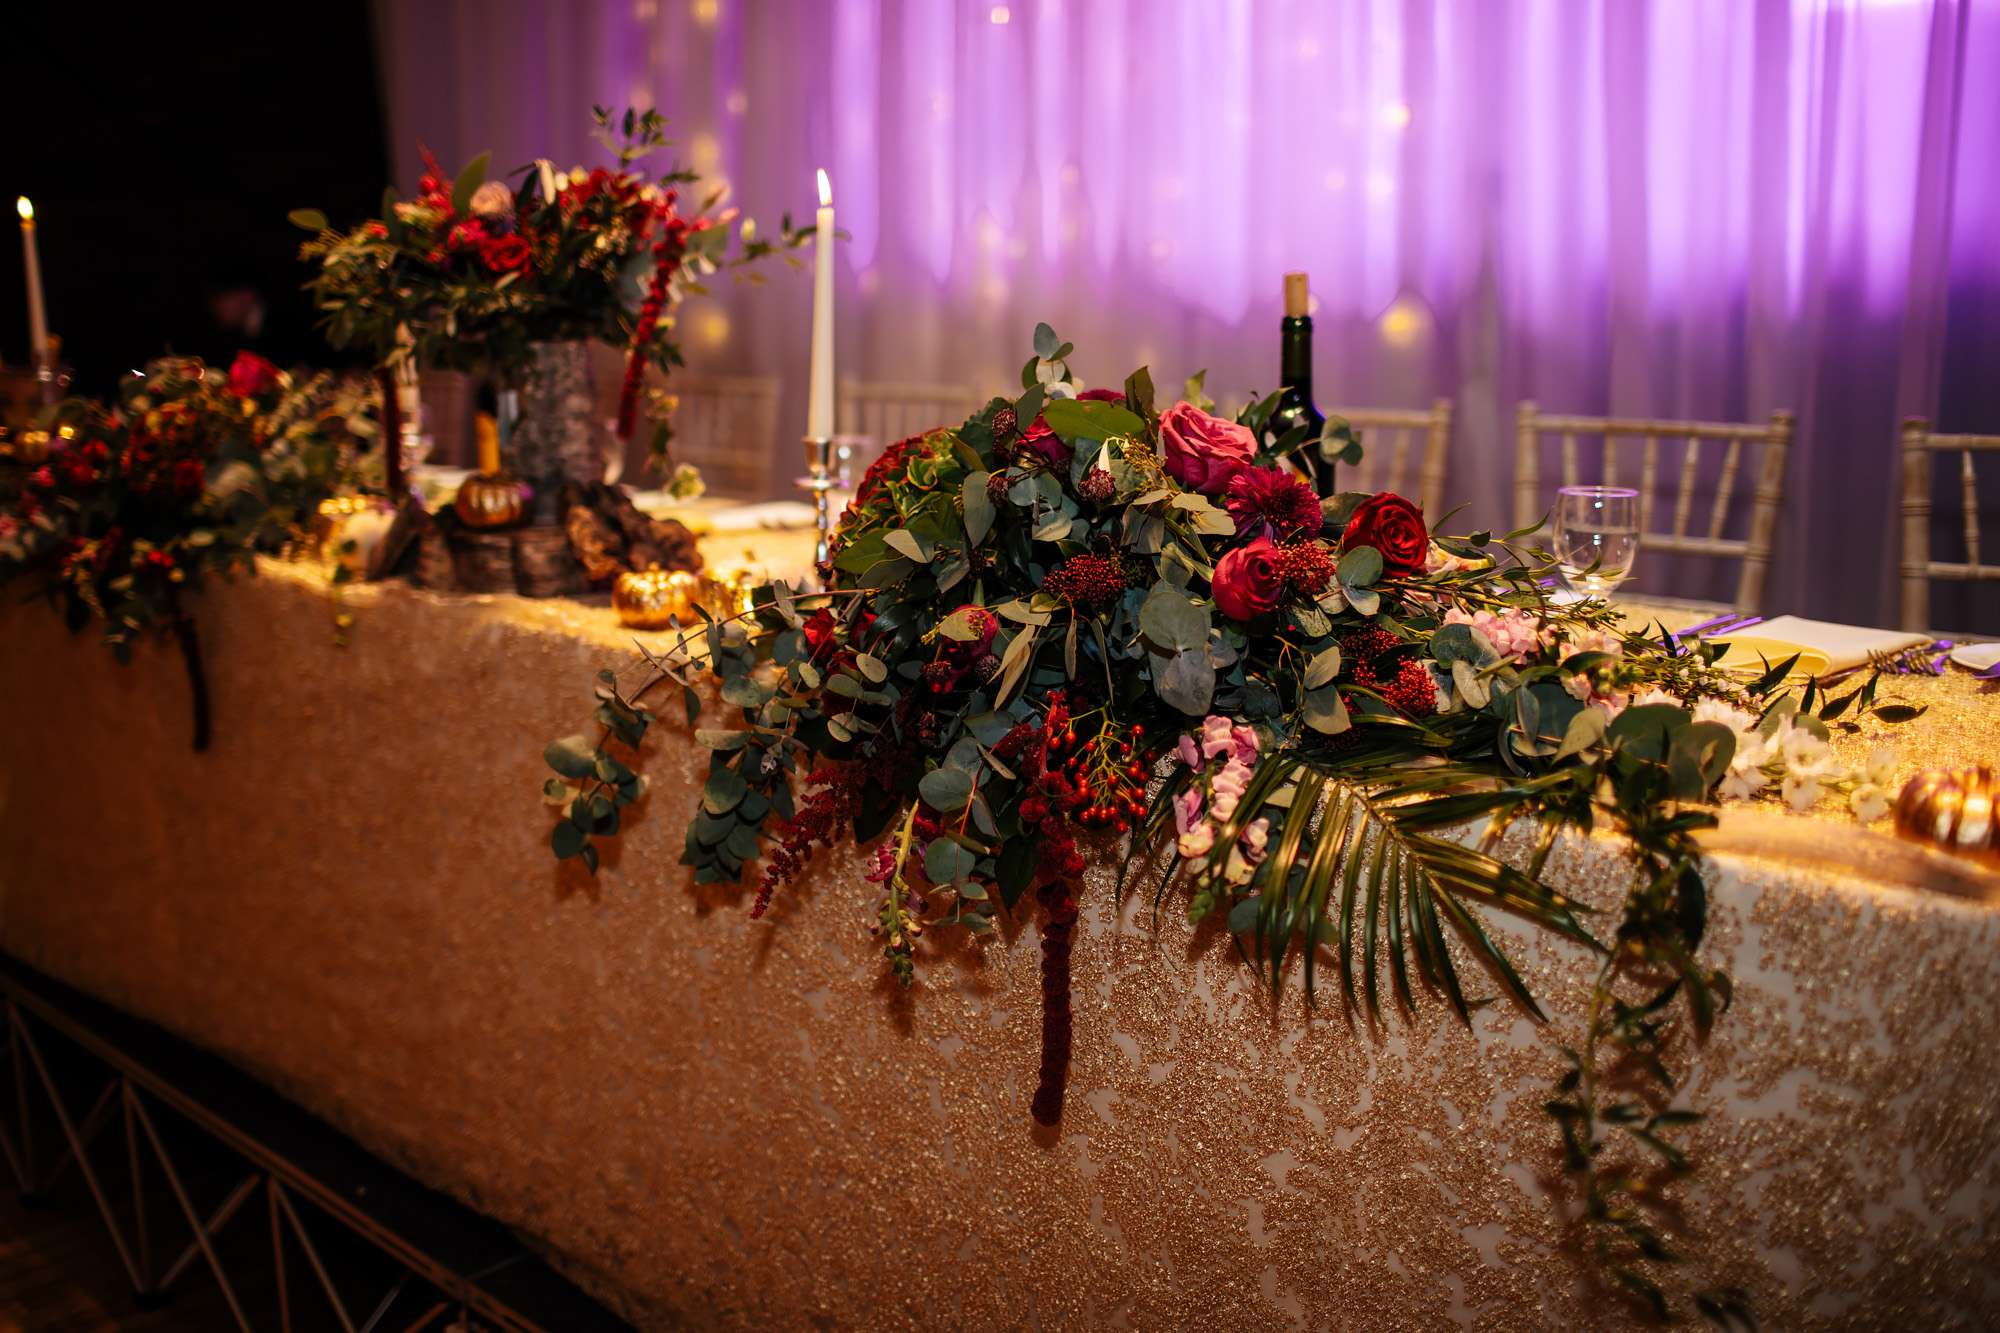 Flower decorations at a wedding